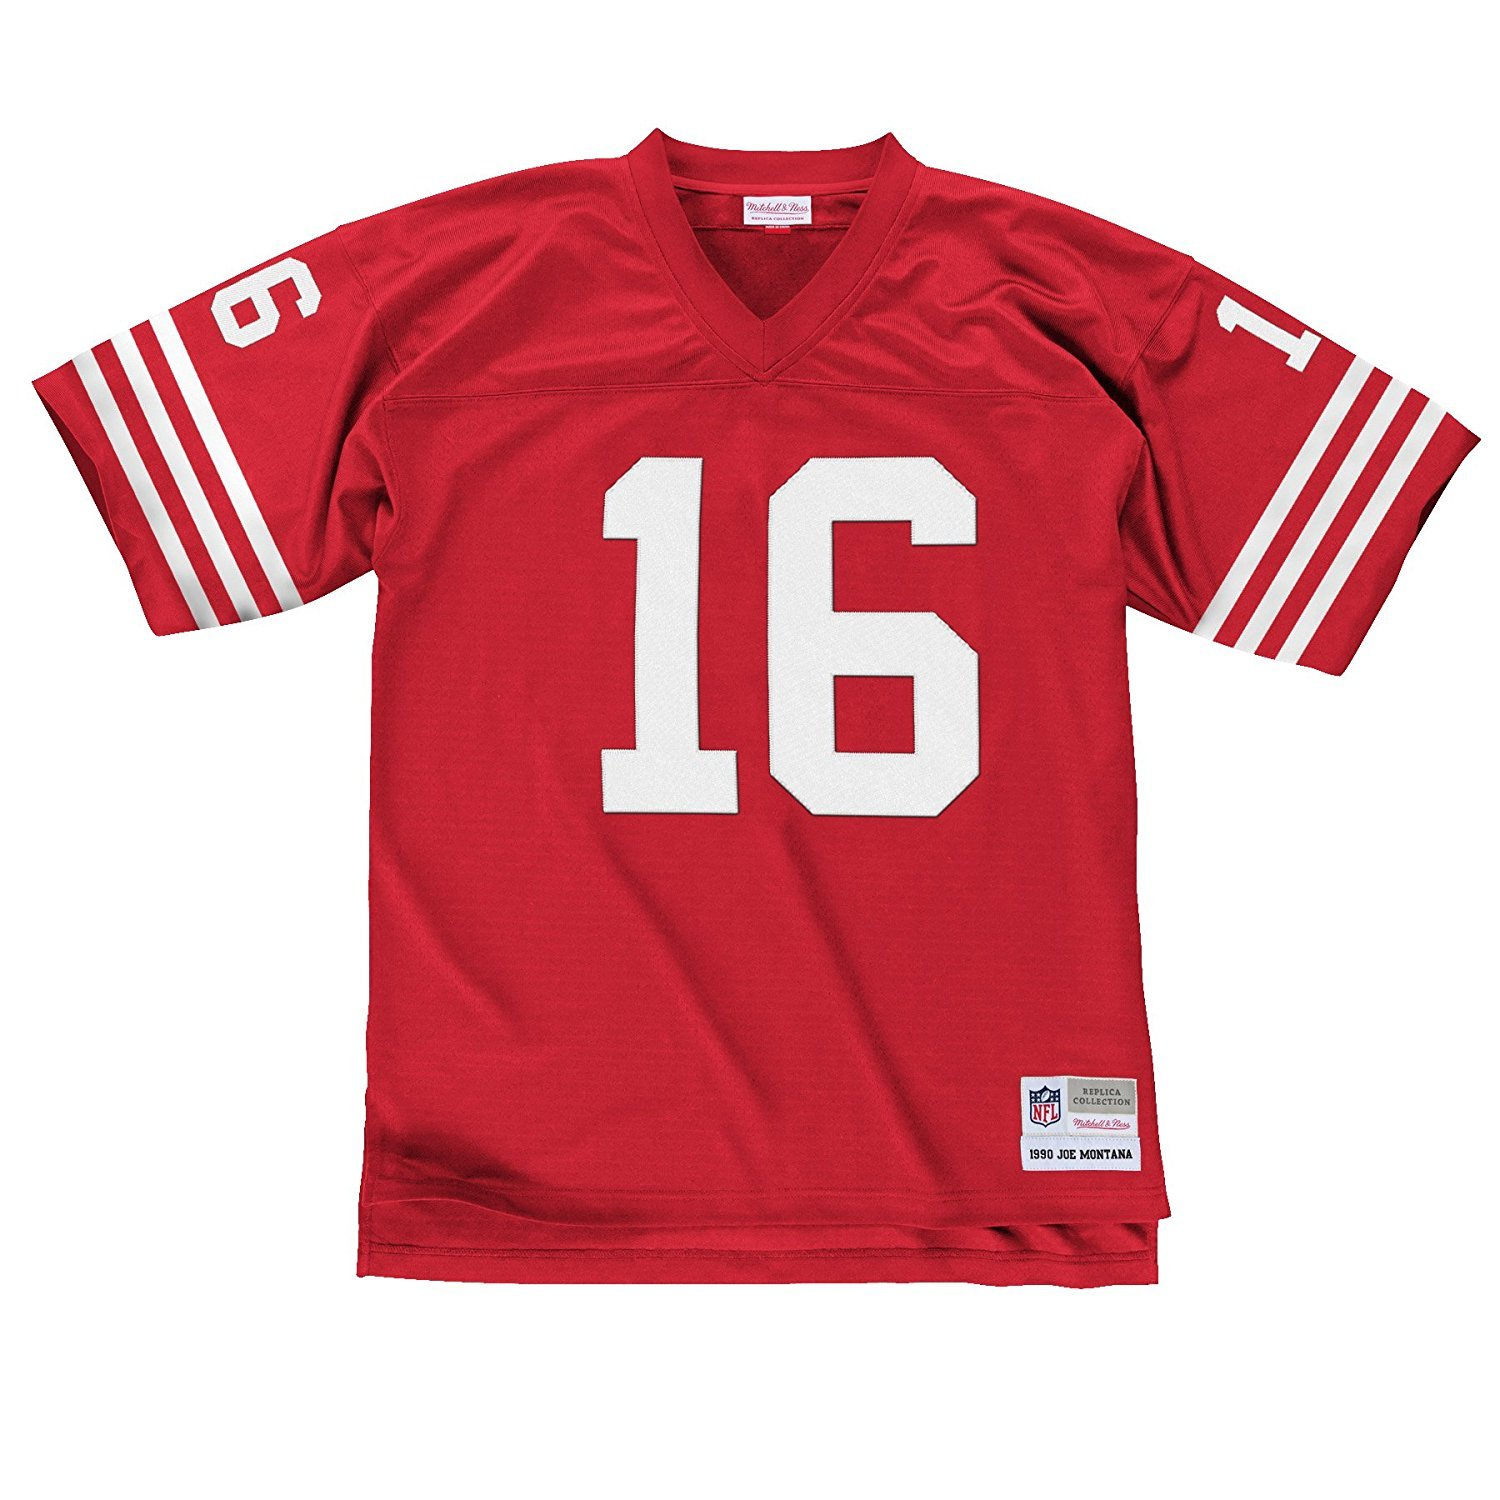 check out 60f44 4fa03 Mitchell & Ness Joe Montana San Francisco 49ers Scarlet Red Throwback Jersey